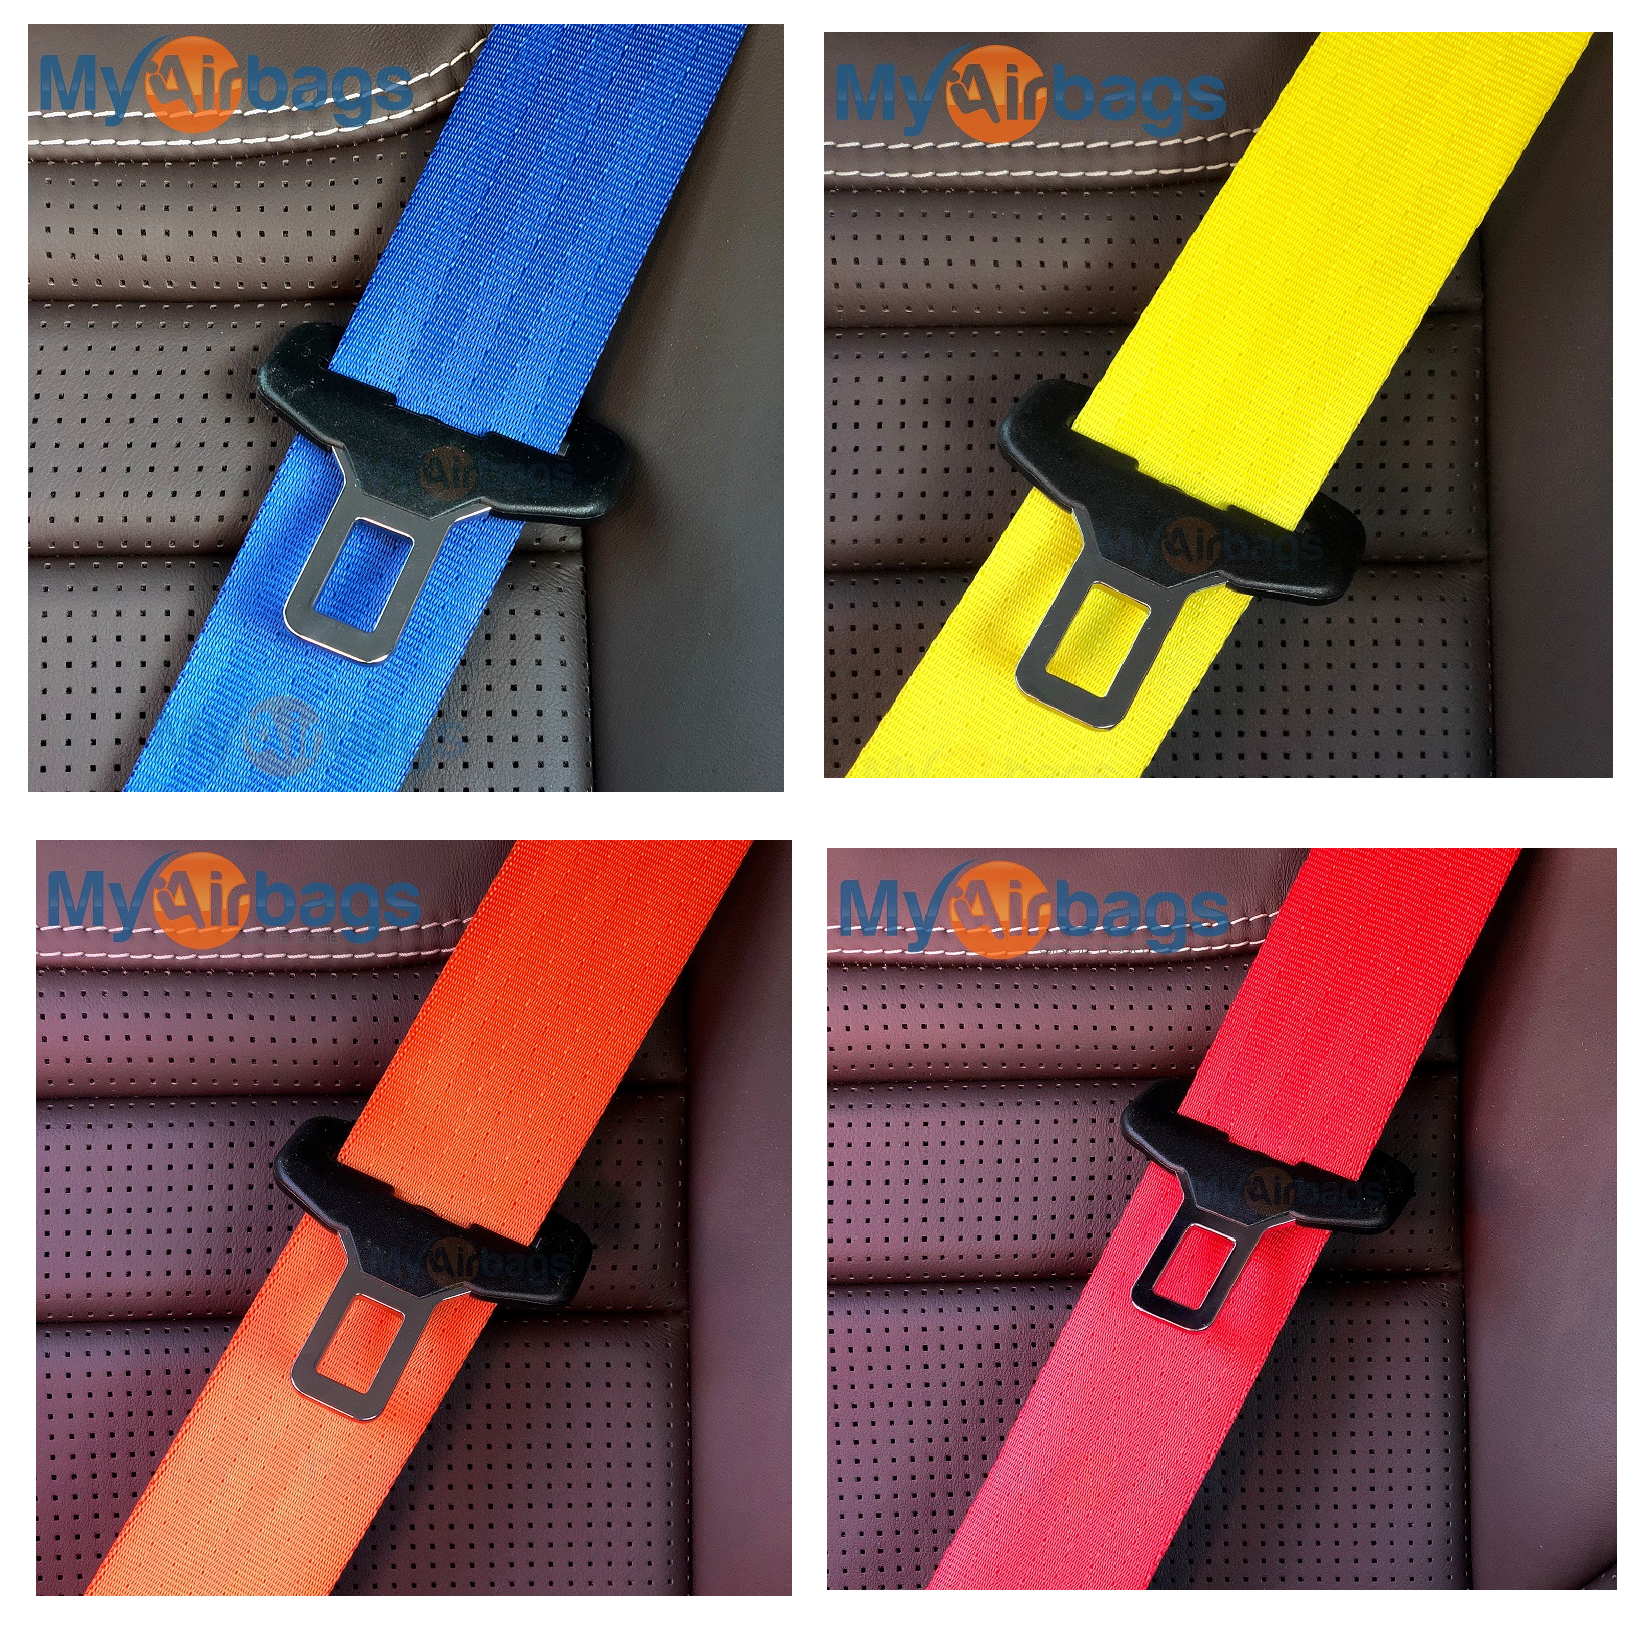 CUSTOM-COLOR-SEAT-BELT-REPLACEMENT-MYAIRBAGS-1